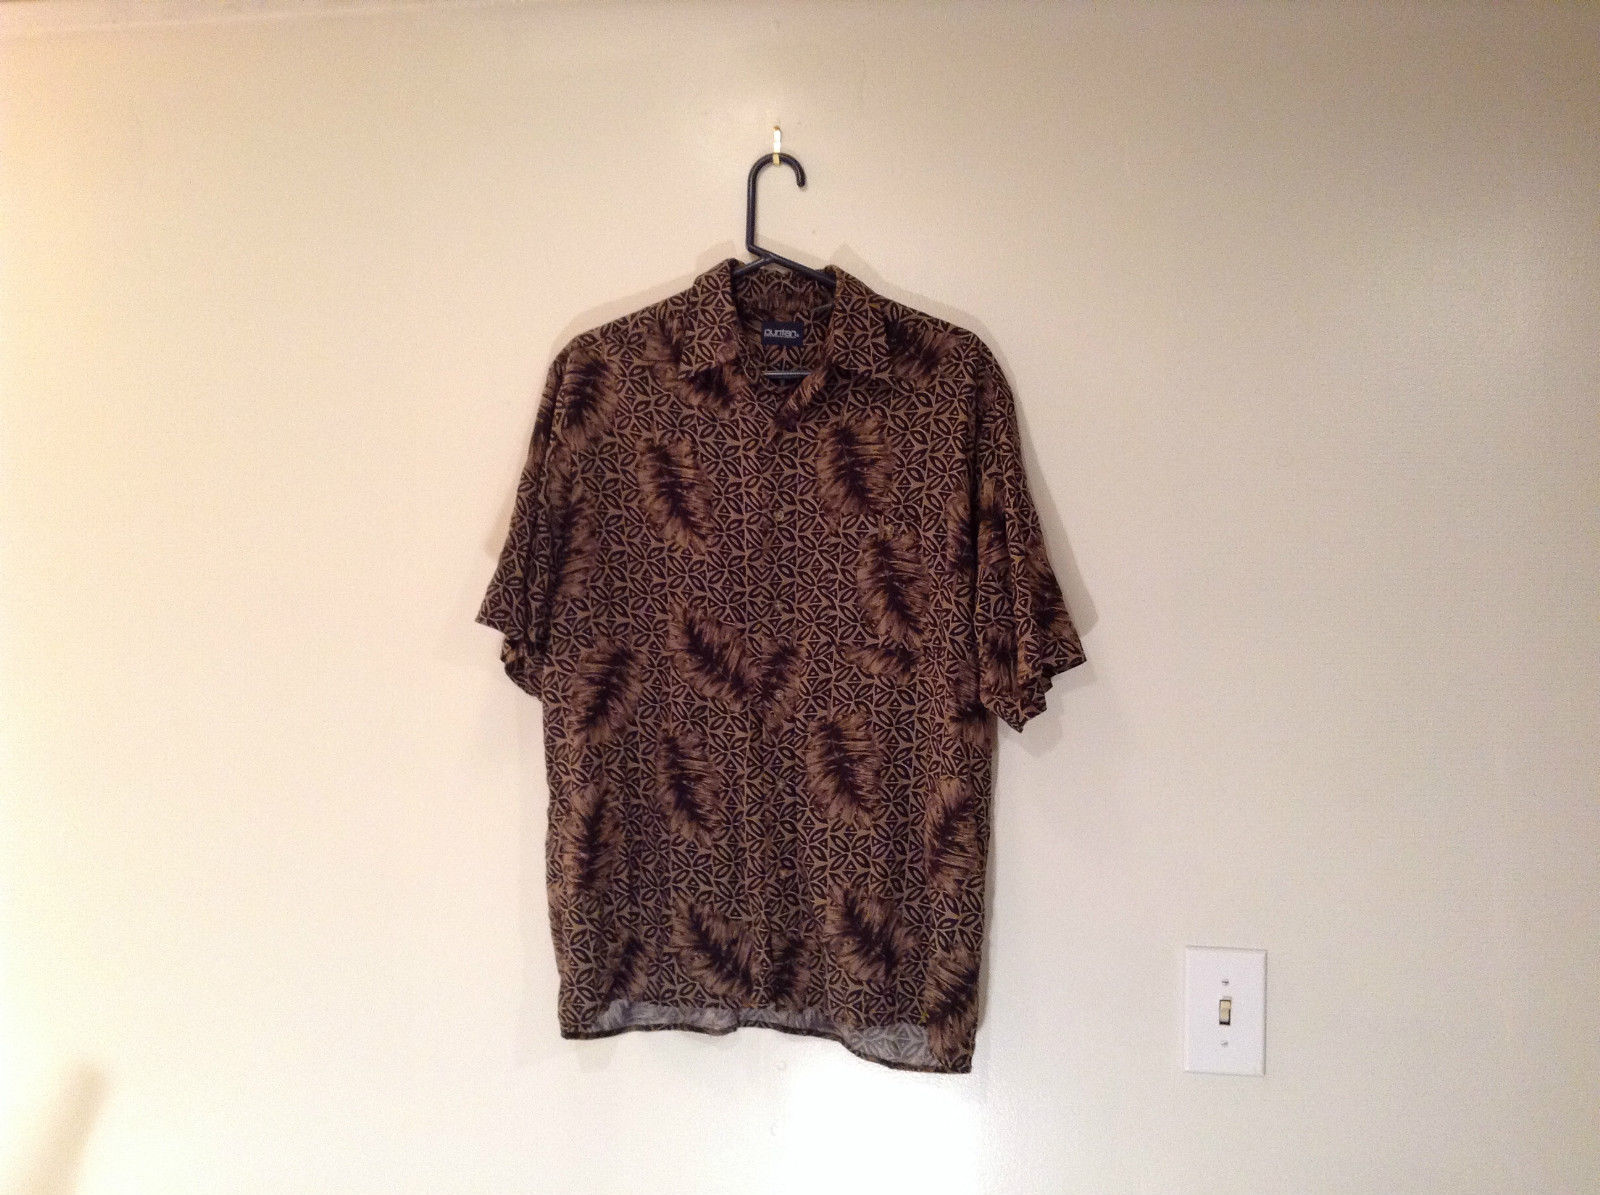 Puritan Short Sleeve Casual Shirt Size M Brown and Black Leaf Pattern Button Up